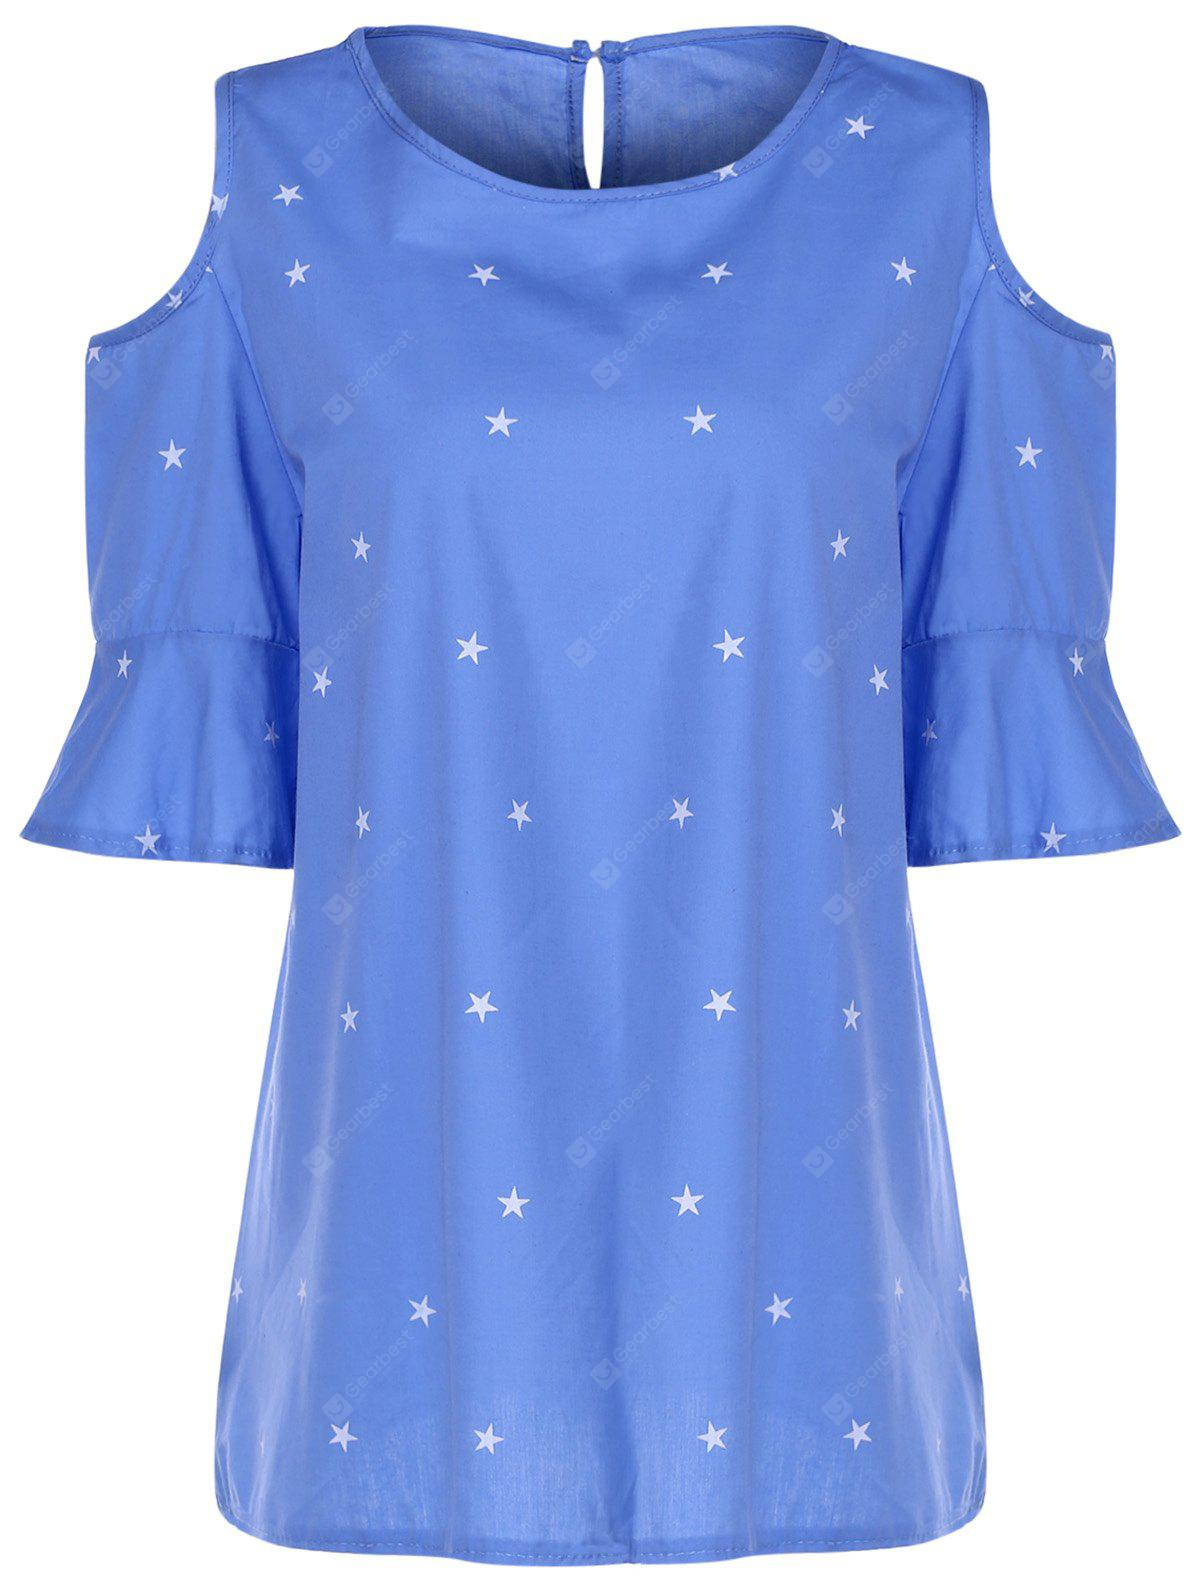 Sweet Round Collar Short Sleeve Star Print Cold Shoulder Plus Size T-Shirt For Women